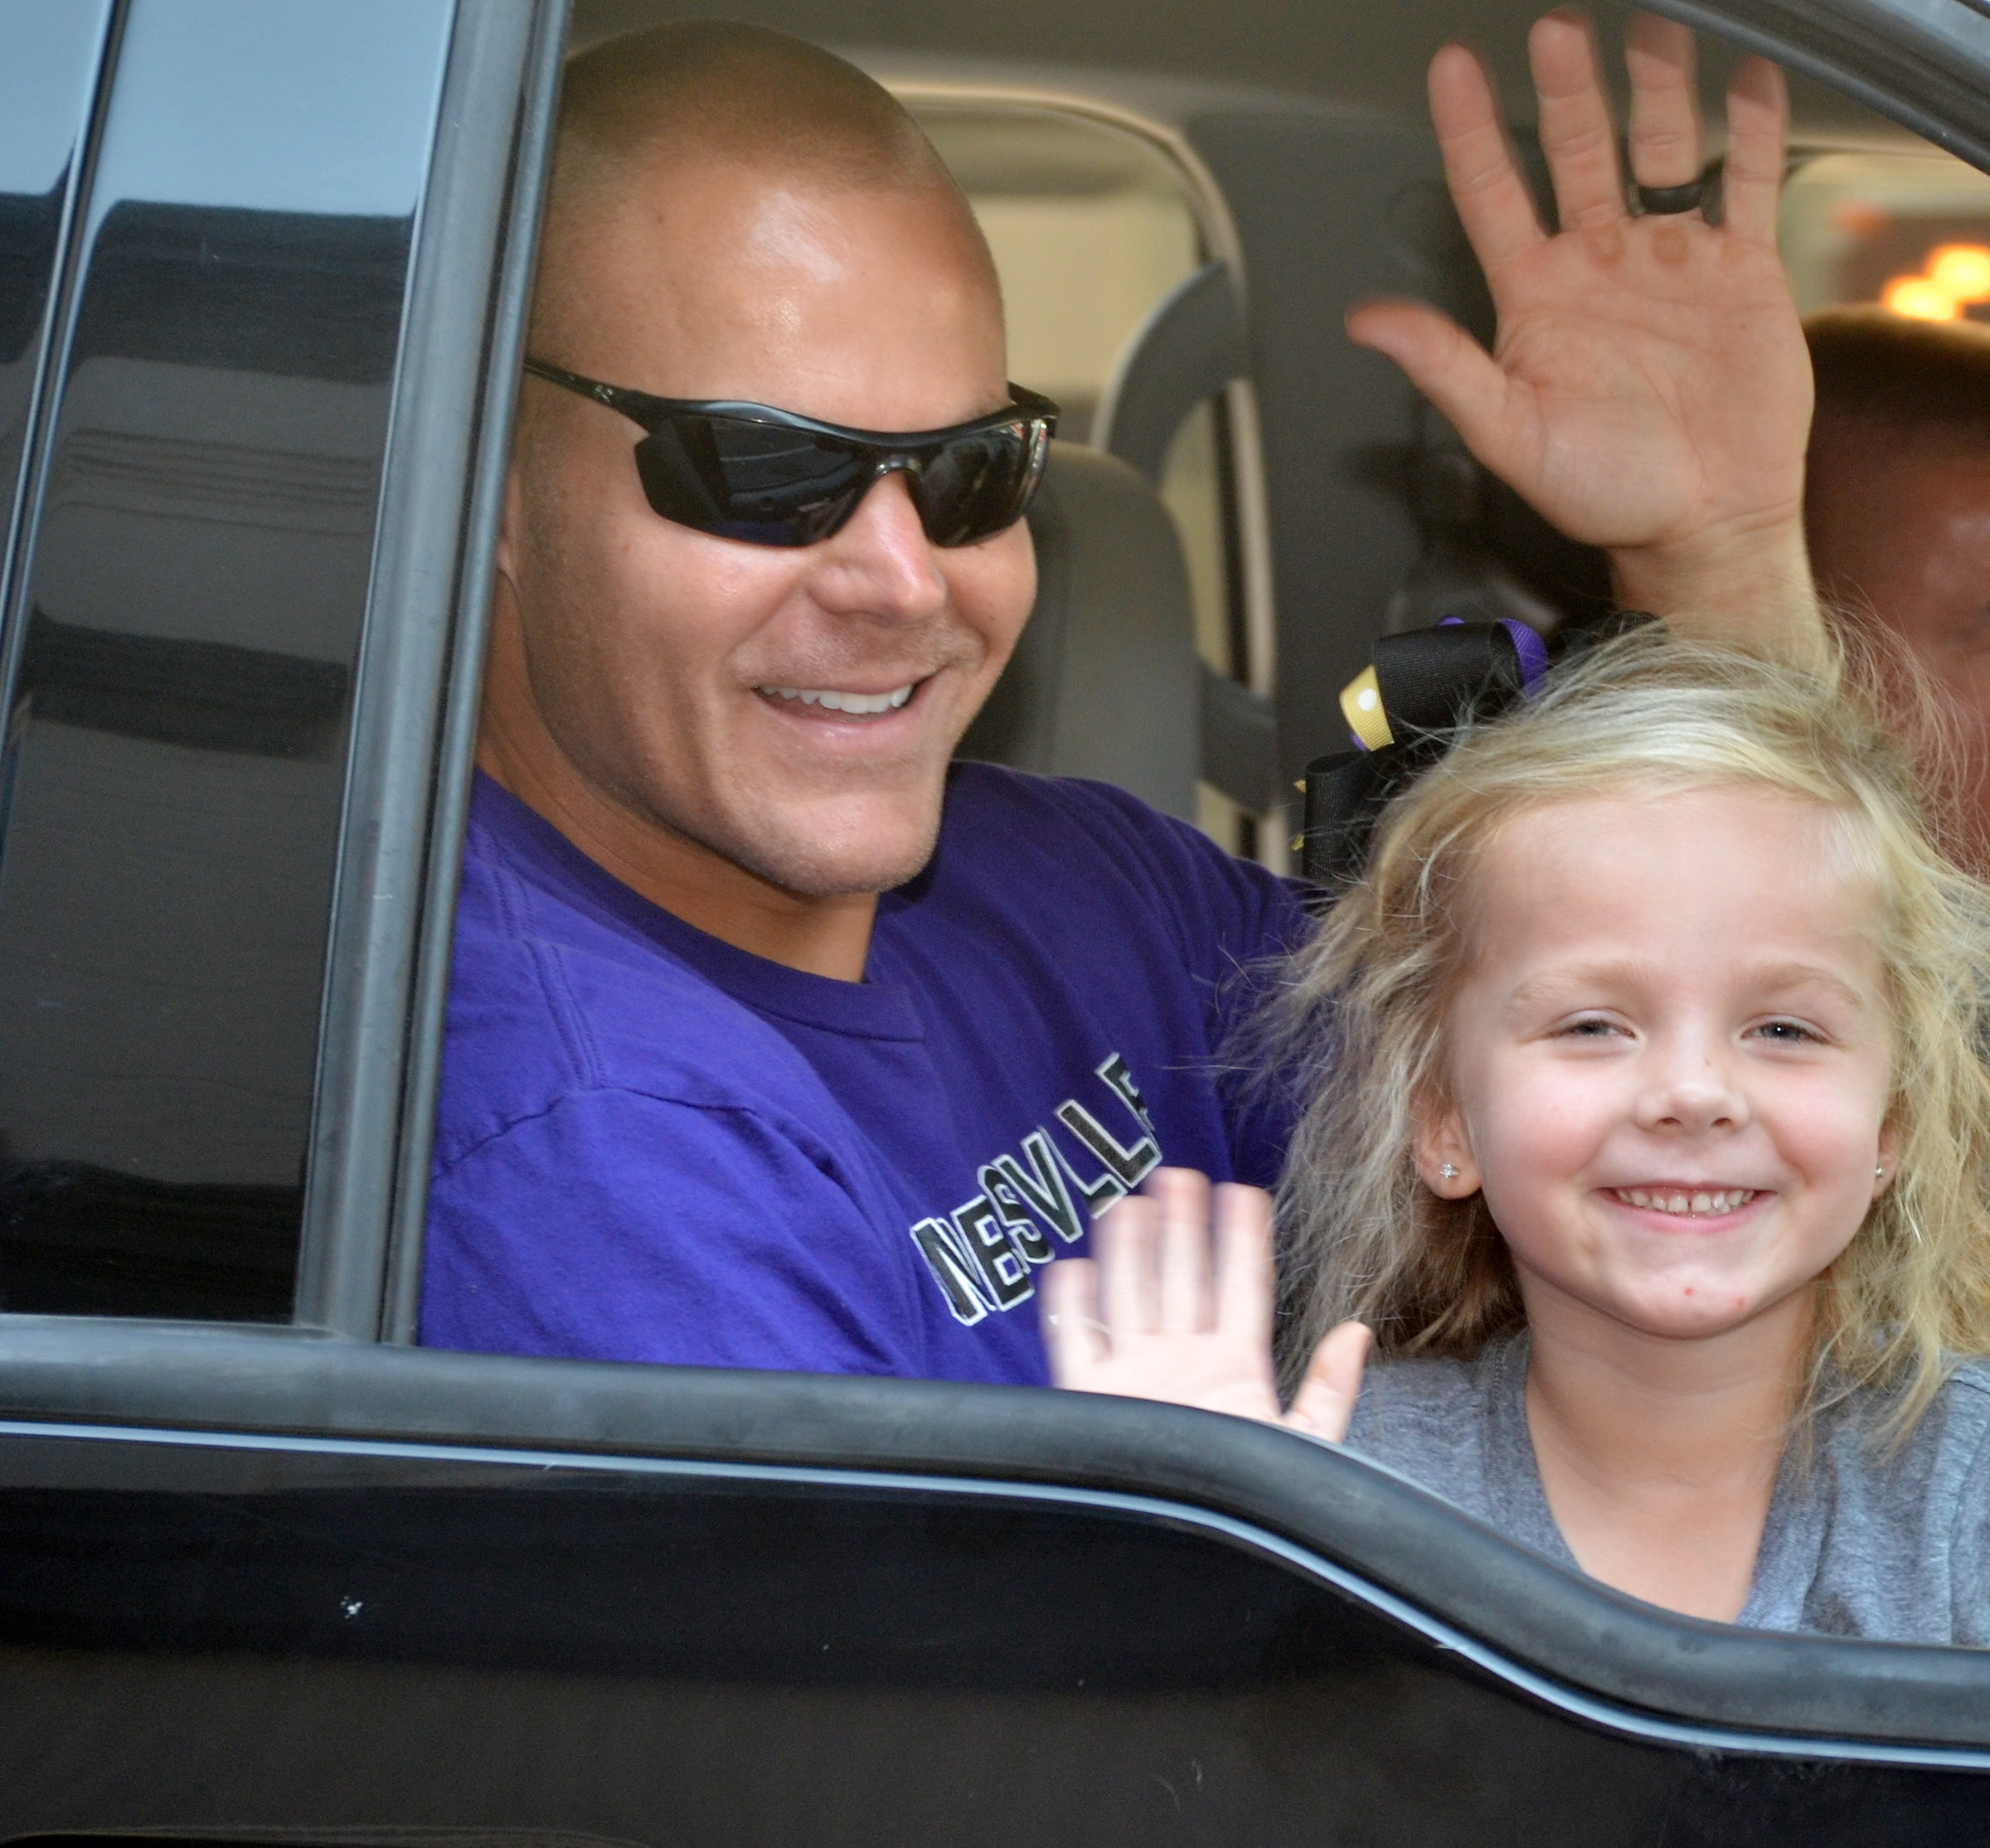 CHS assistant football coach Robbie Gribbins waves with his daughter, Trinidy, who is a kindergartener at Campbellsville Elementary School.